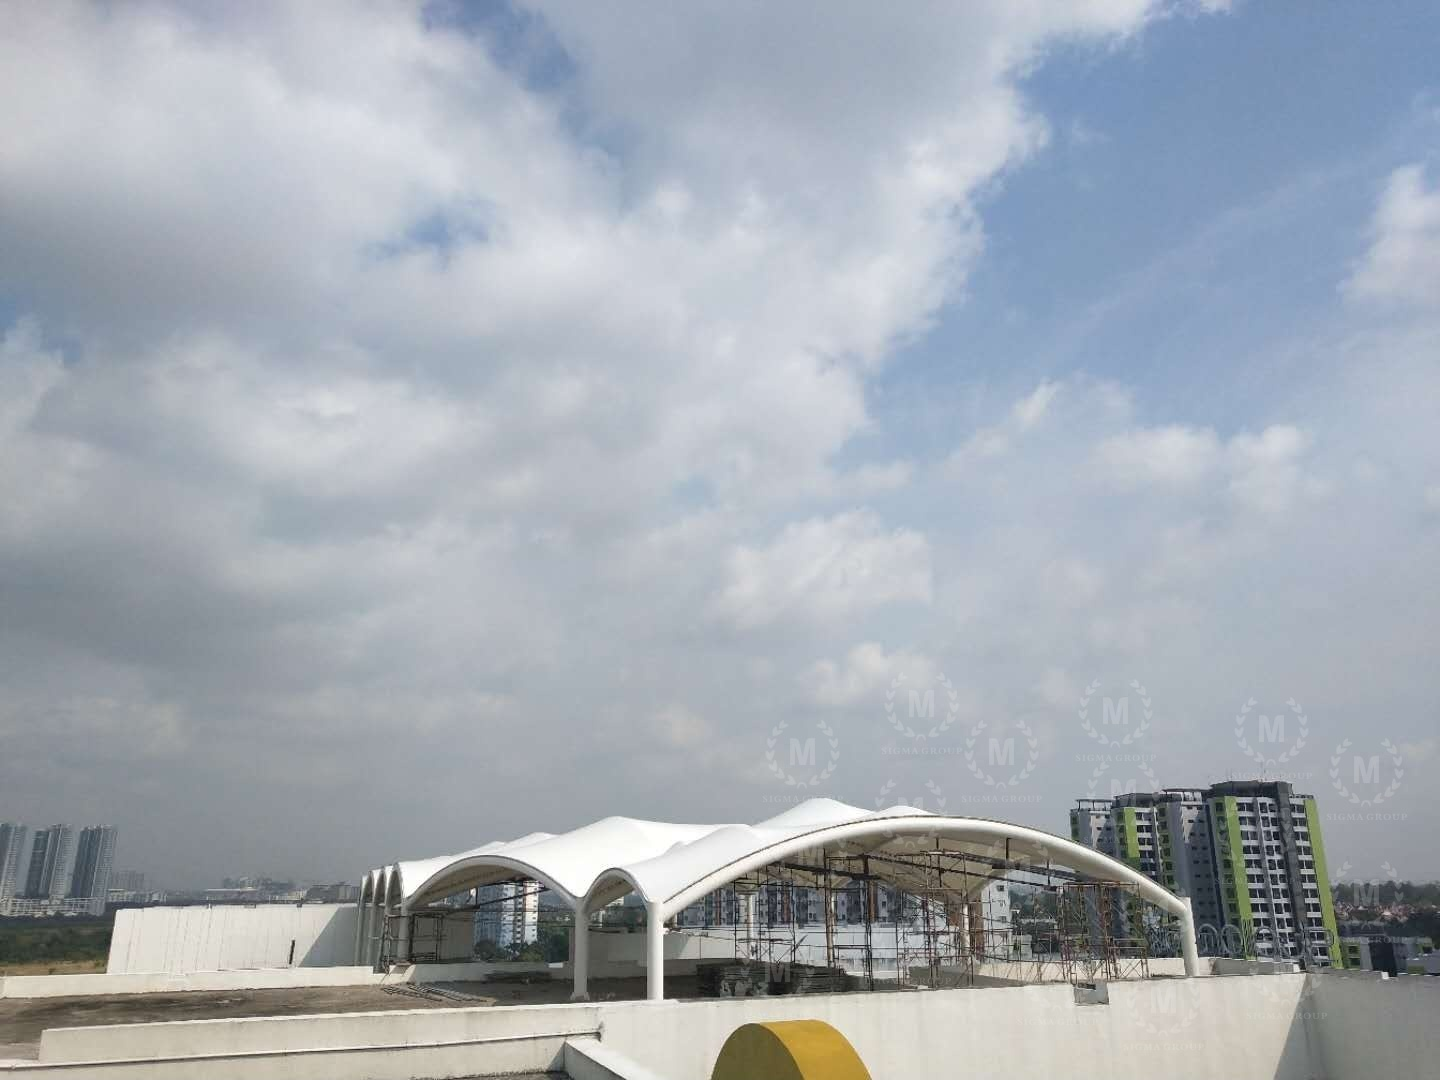 roof canopy,tensile membrane structure,tent canopy,steel structure